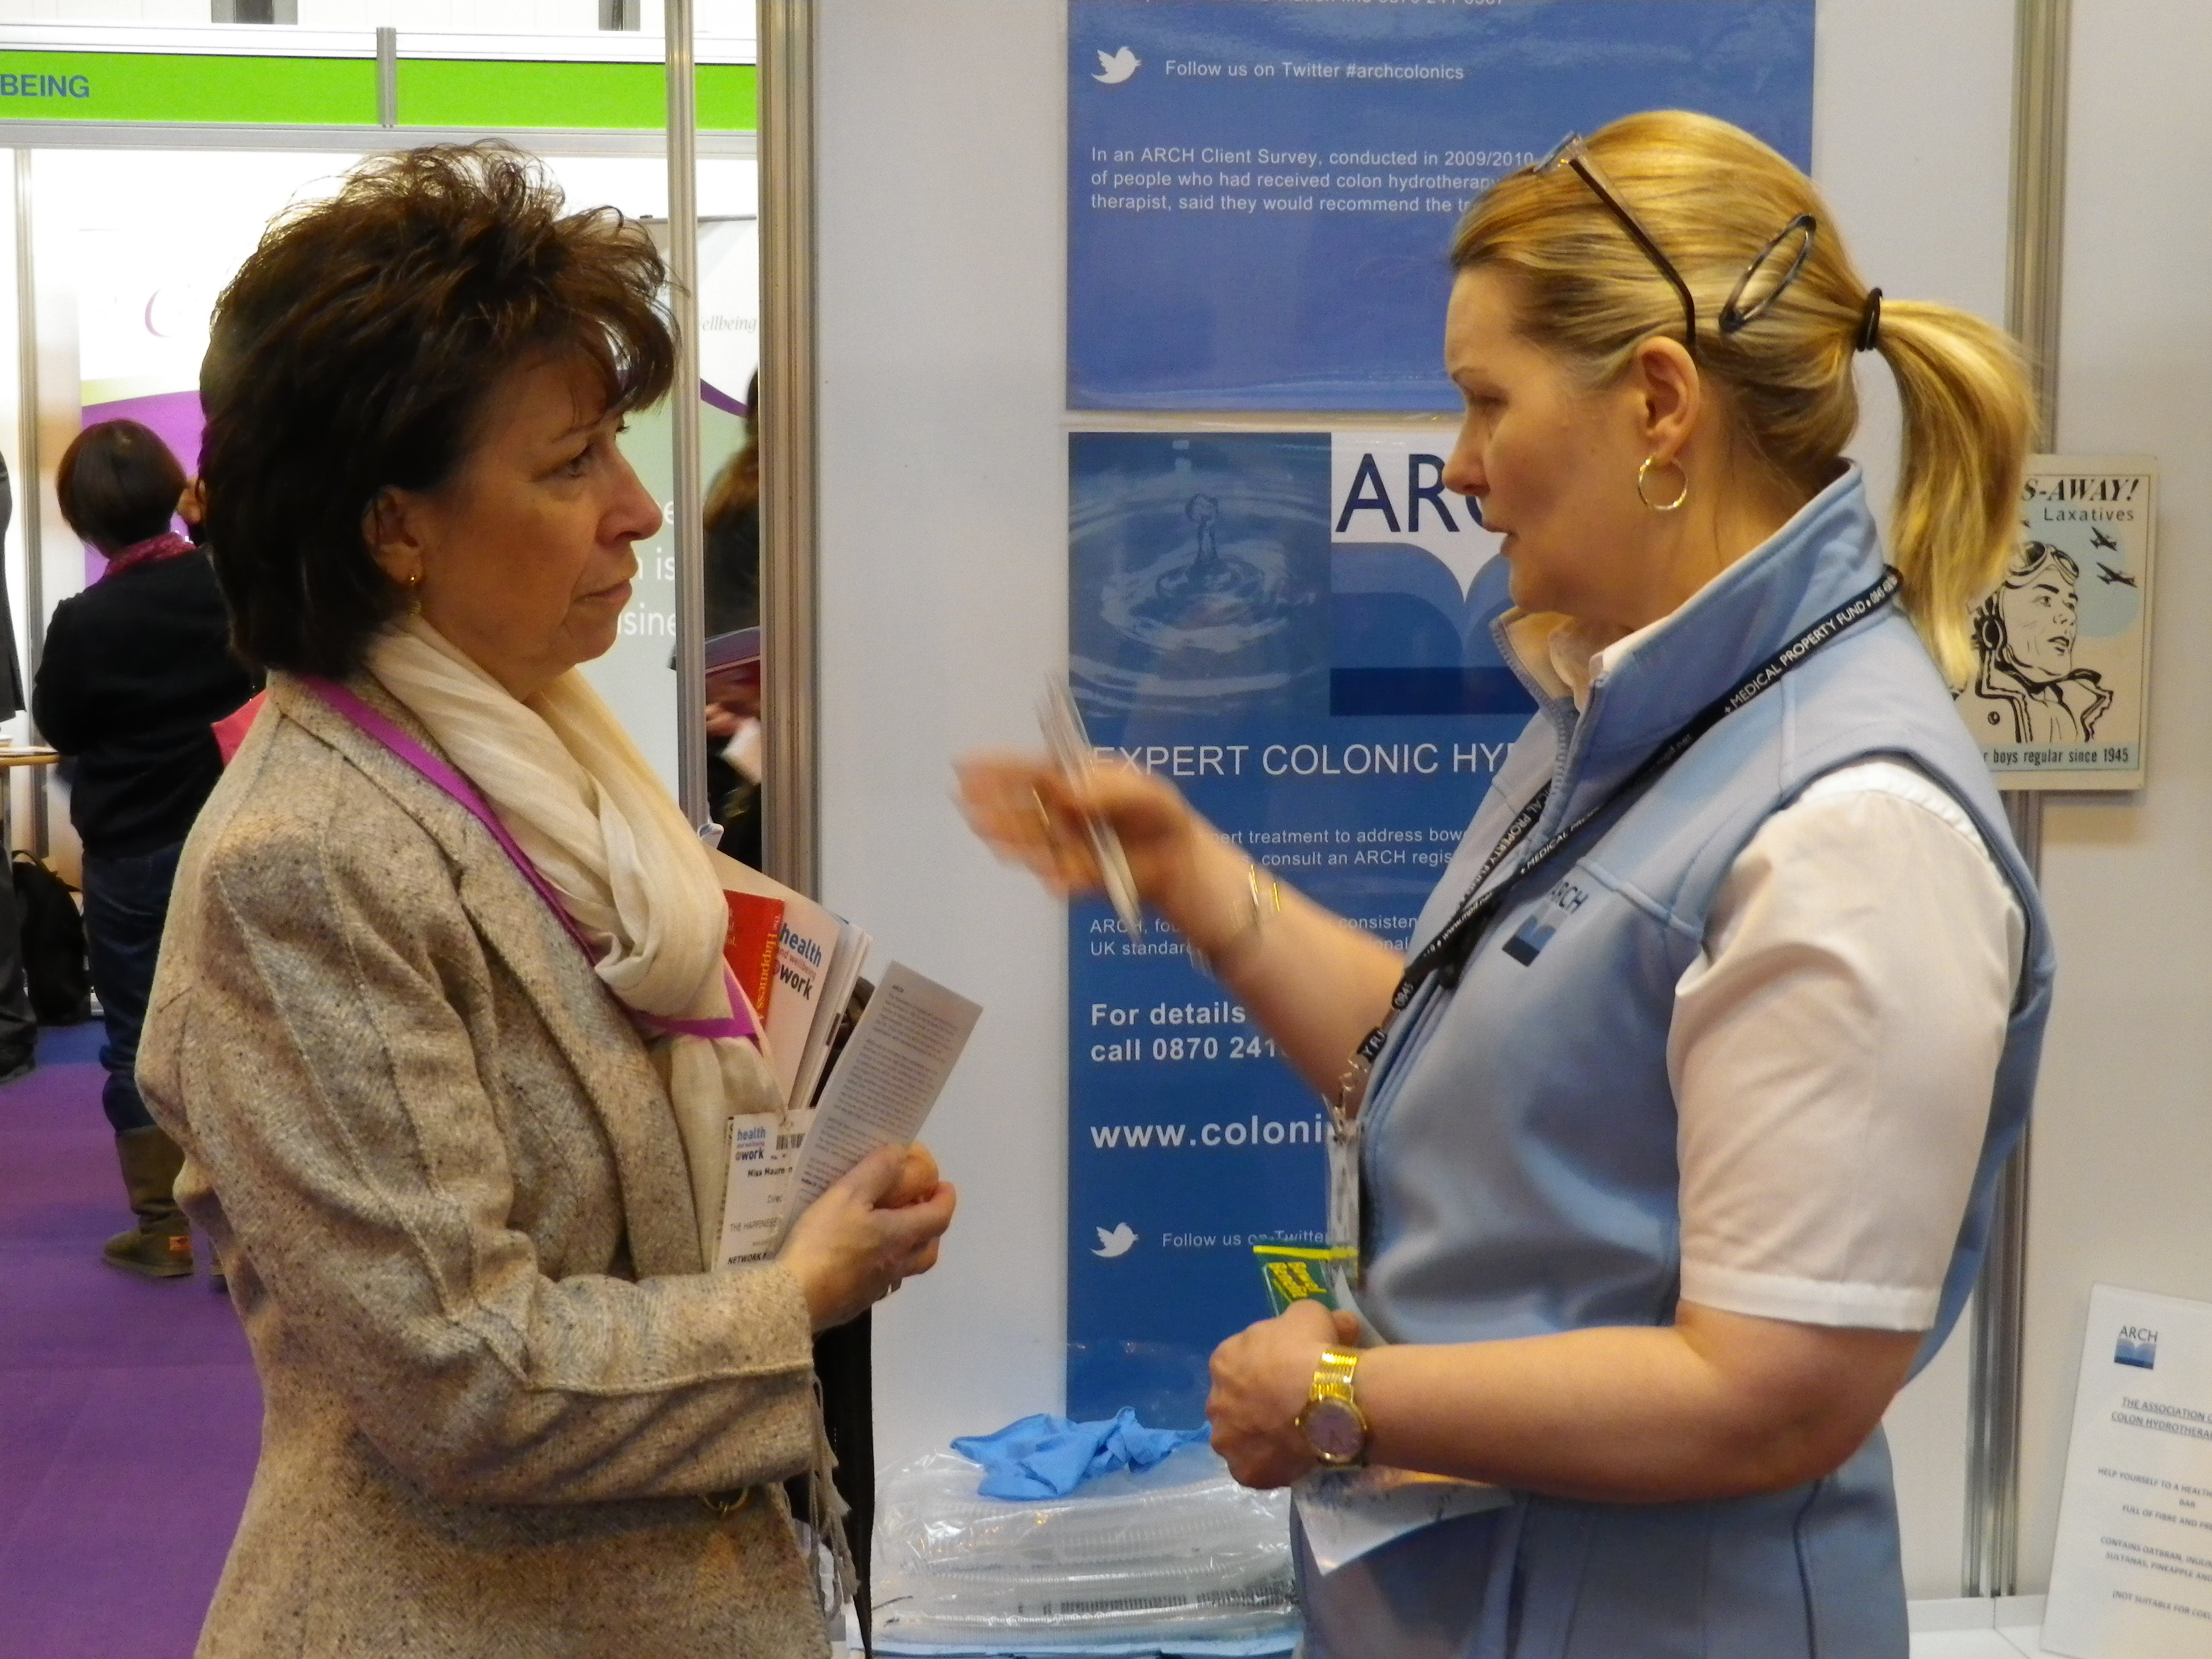 Discussing the merits of colonic hydrotherapy treatment